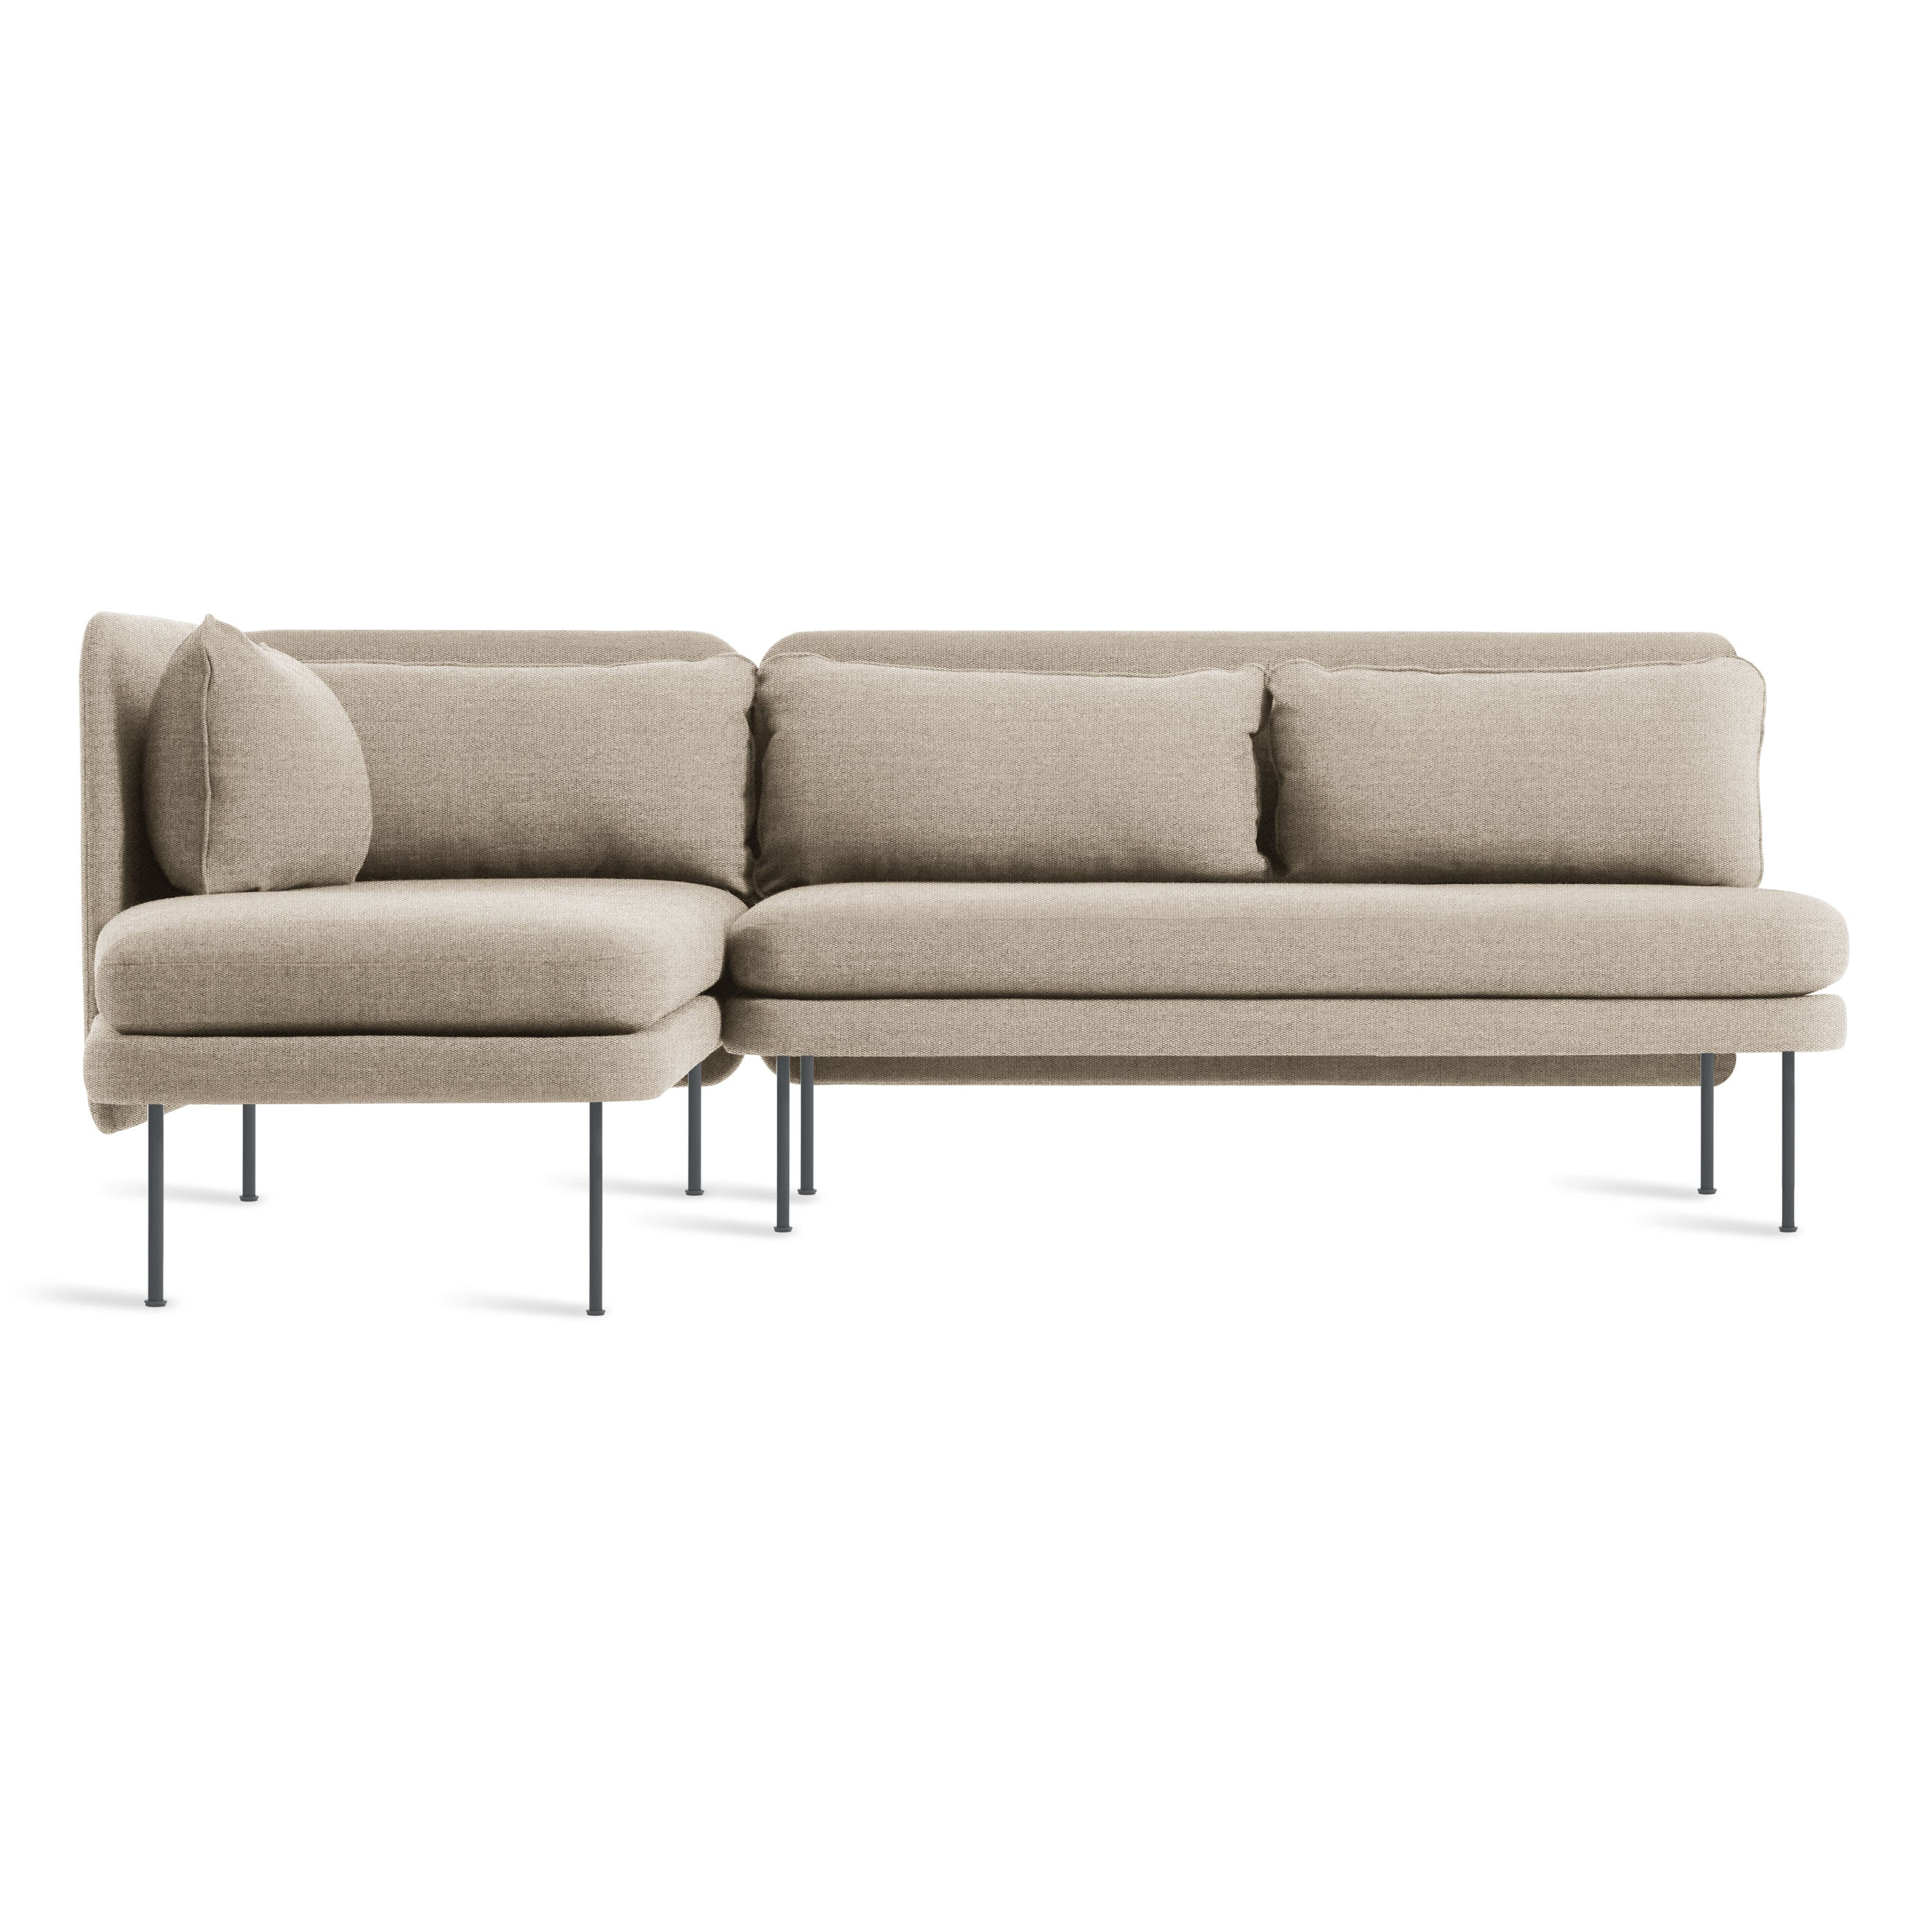 "Bloke 92"" Armless Sofa Chaise Sectional"